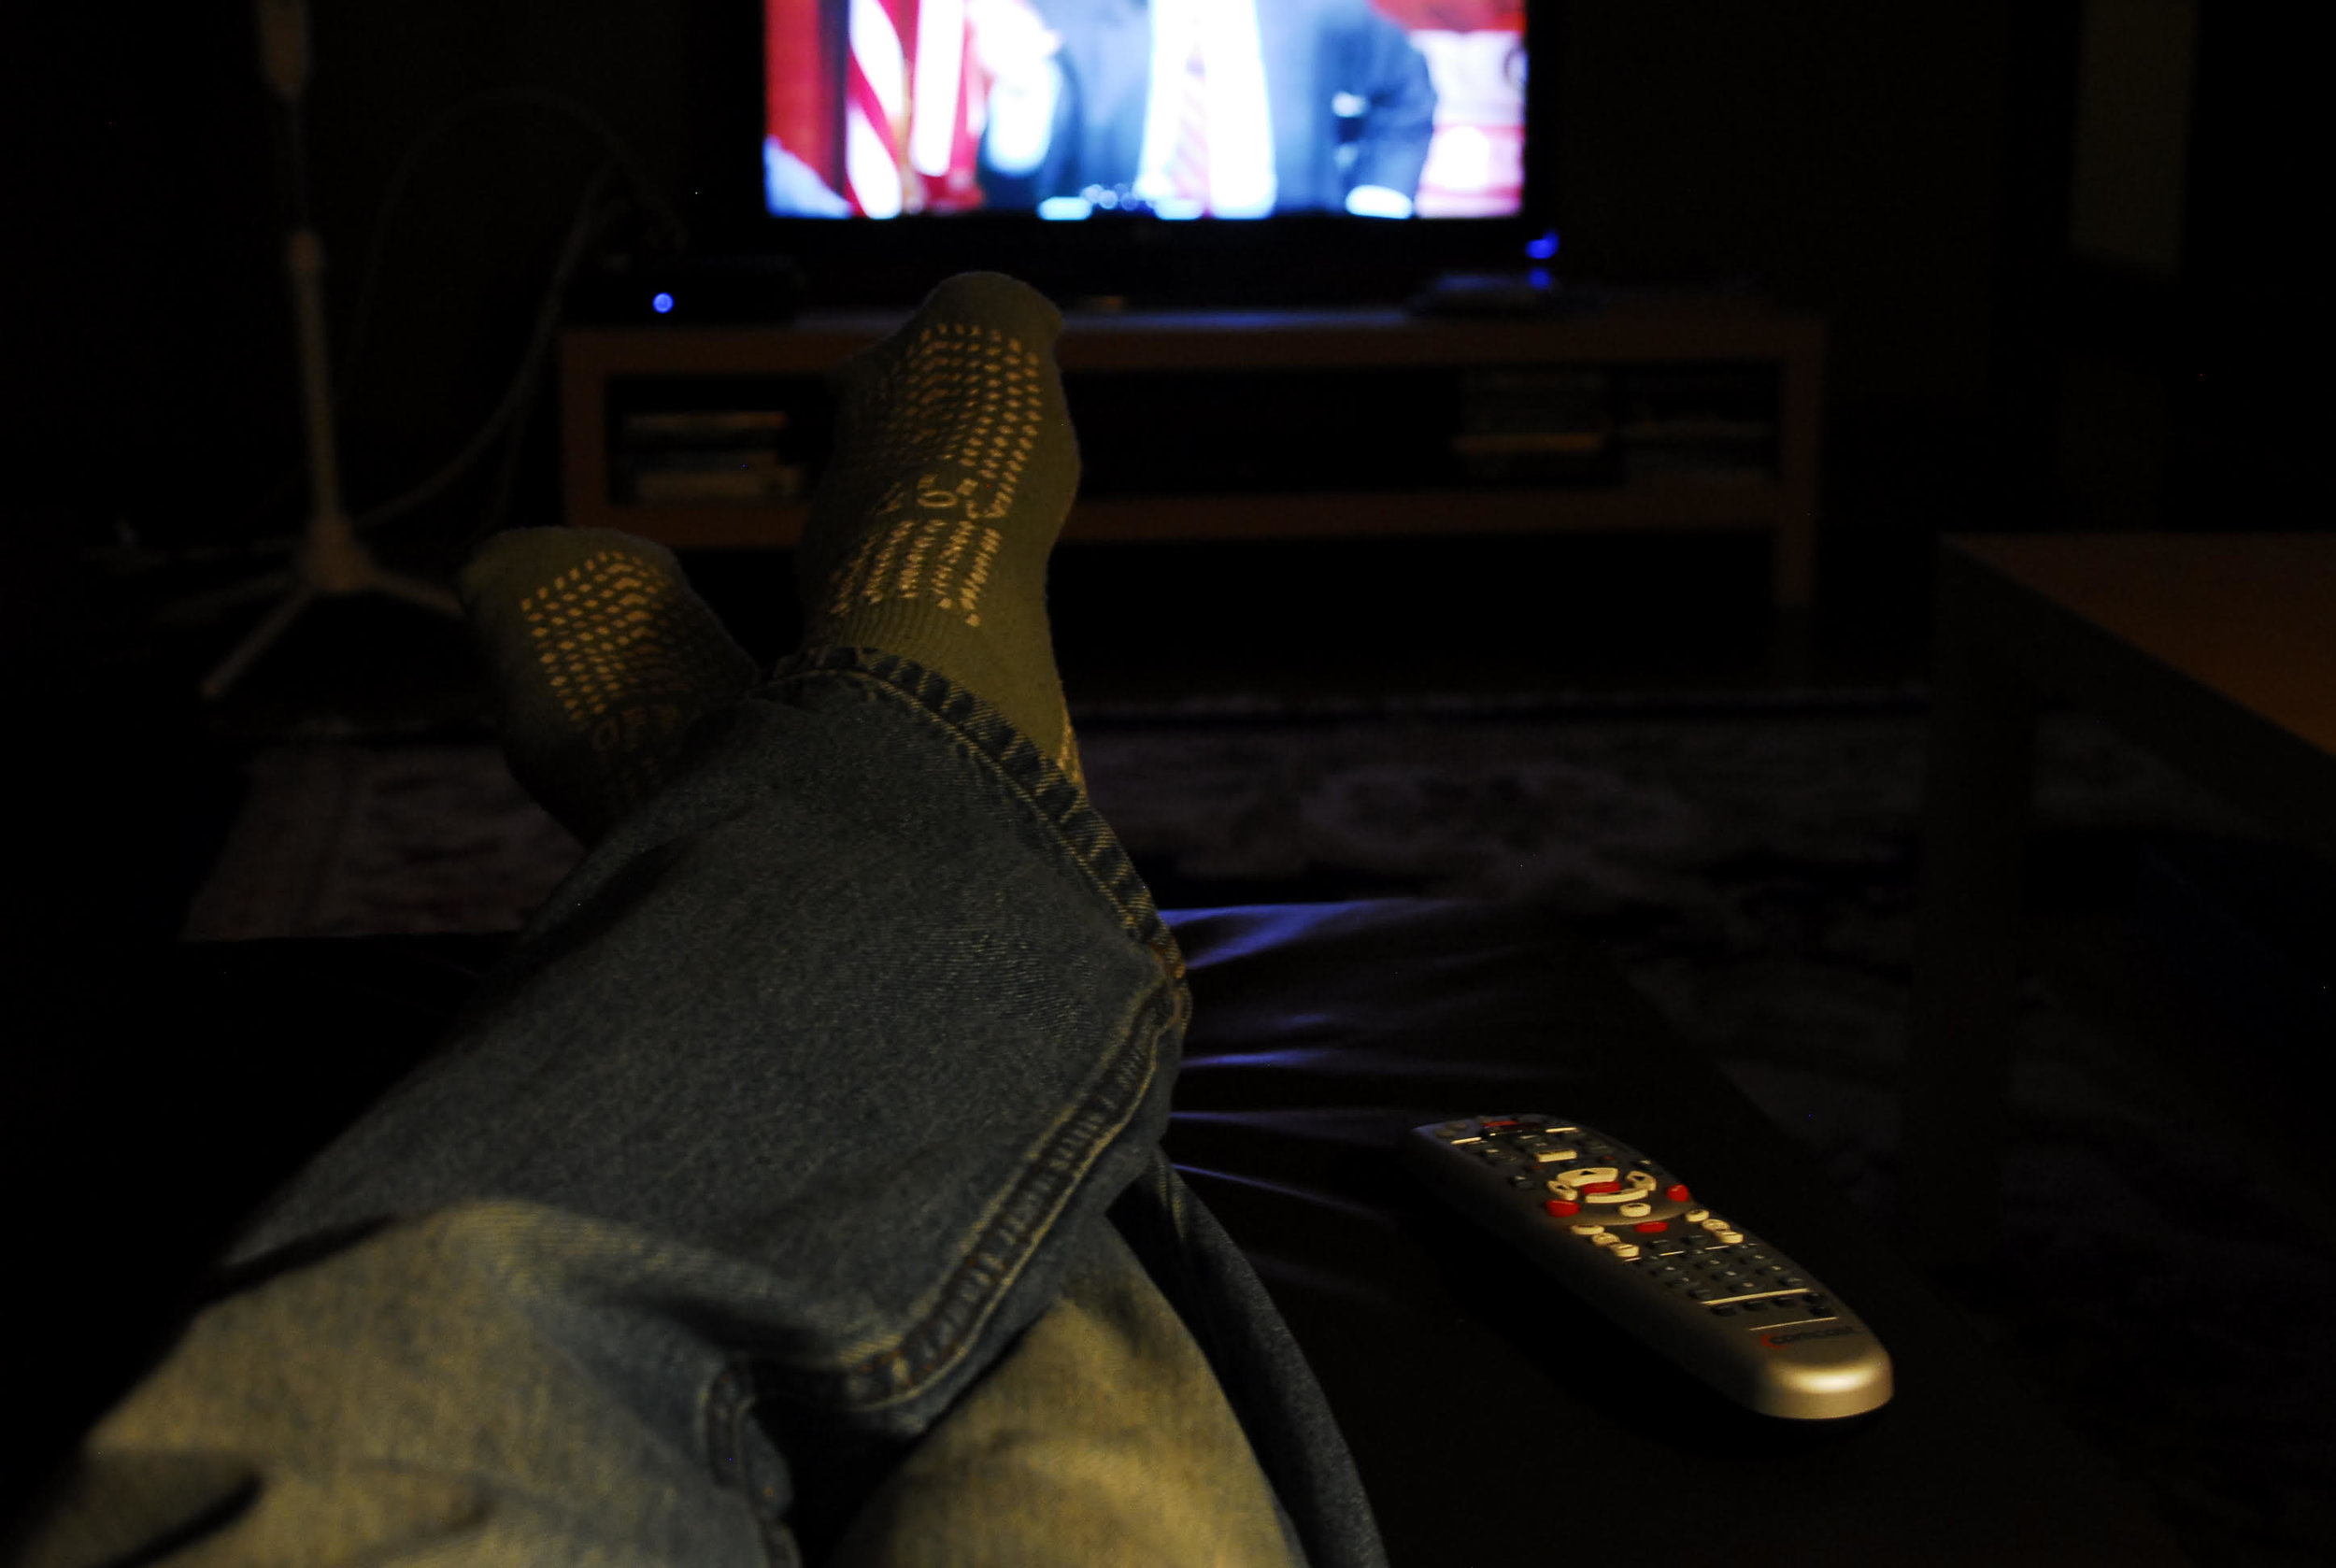 Buck's feet resting in front of the TV